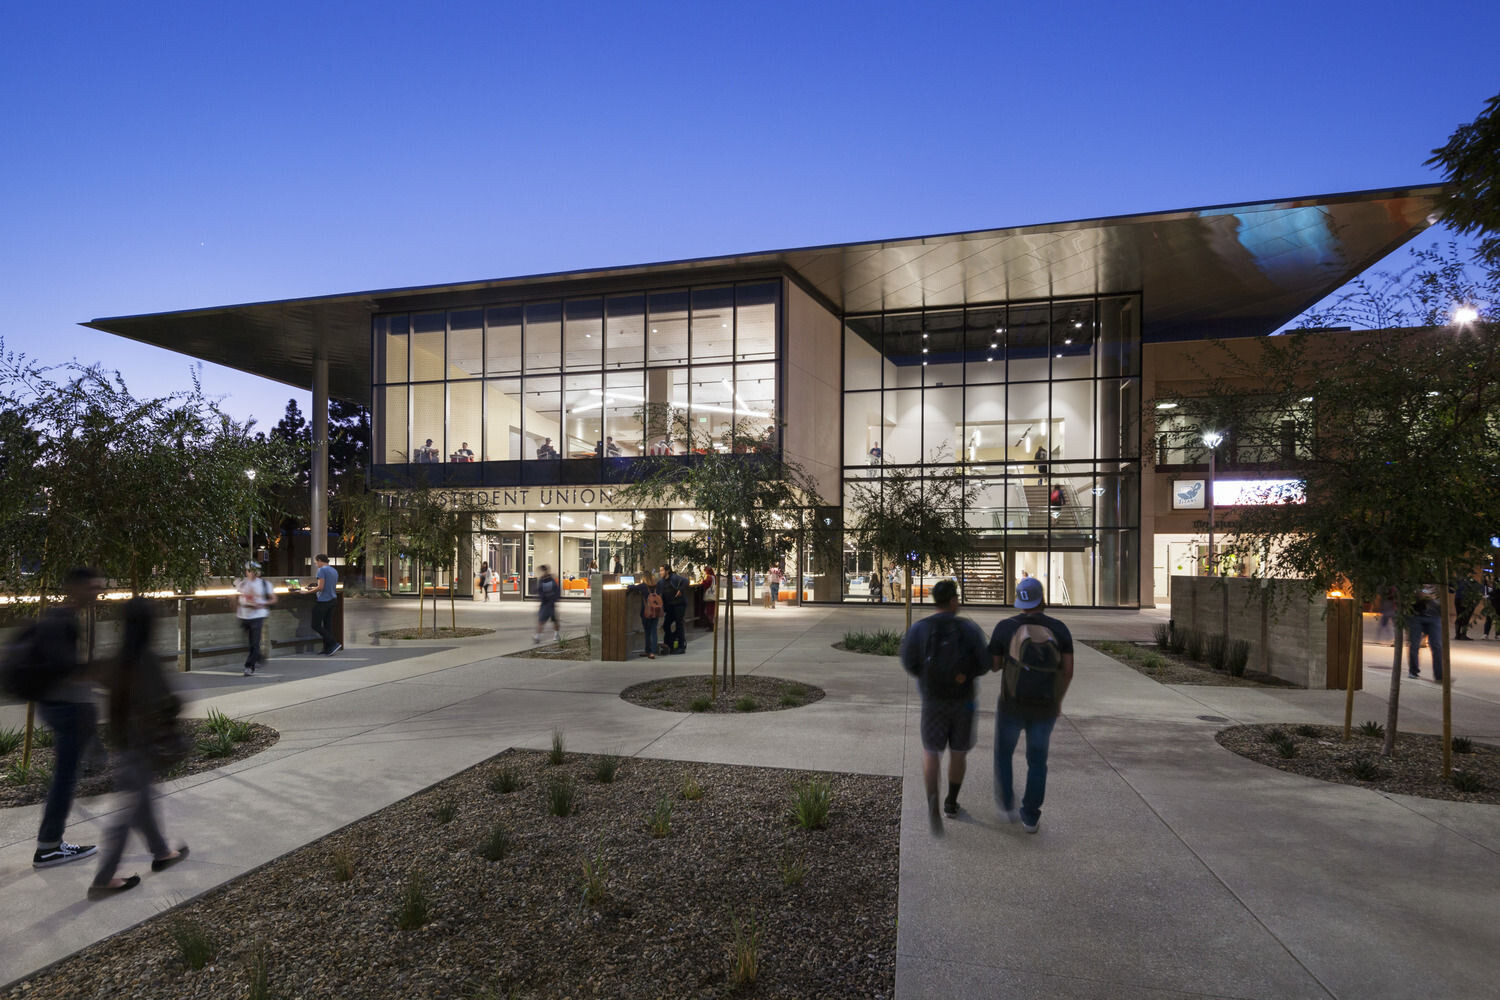 Cal State Fullerton,  Titan Student Union